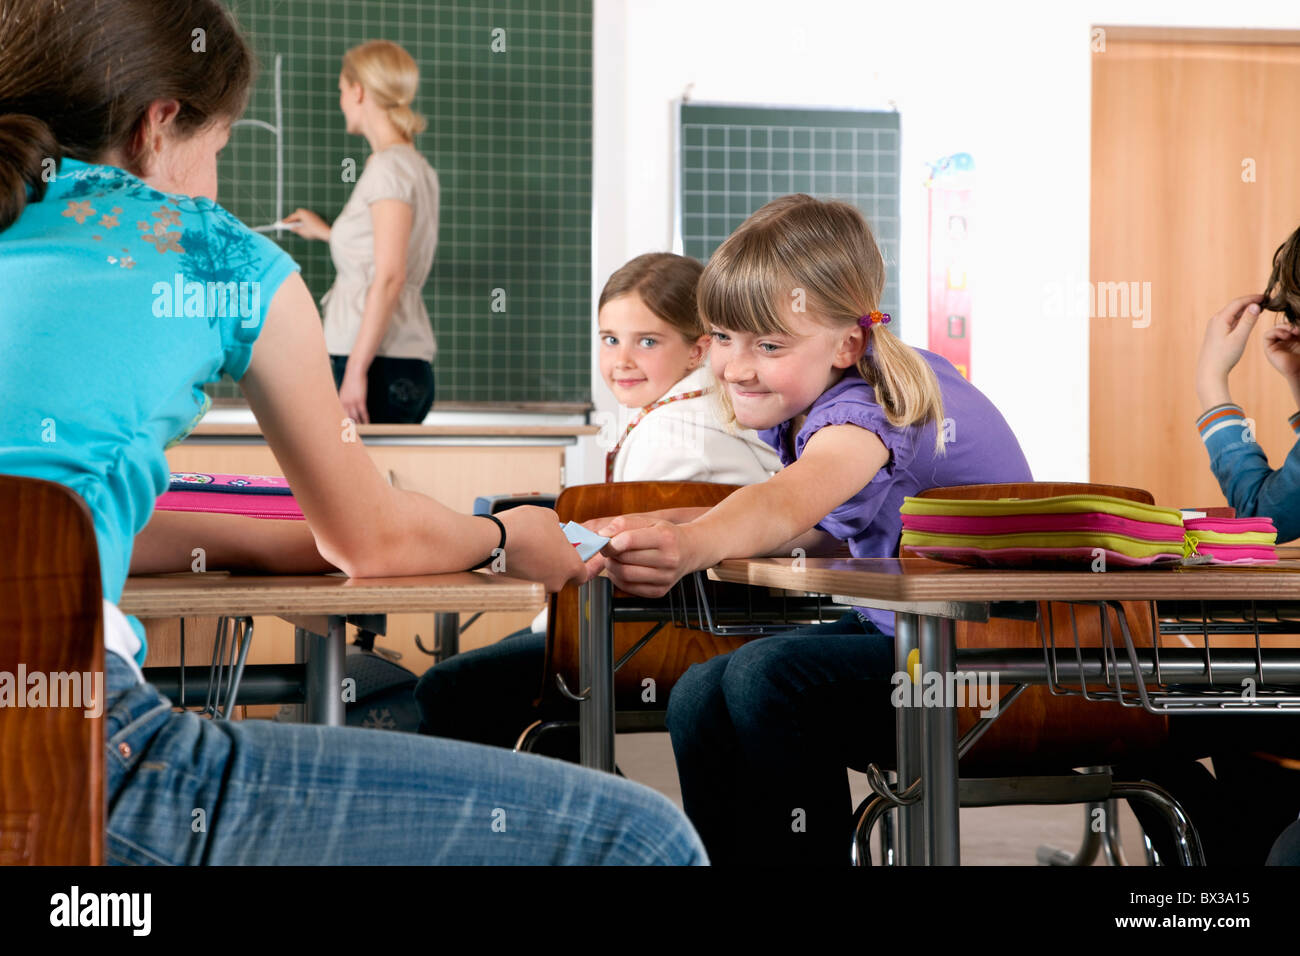 young girl giving little note to friend in classroom - Stock Image